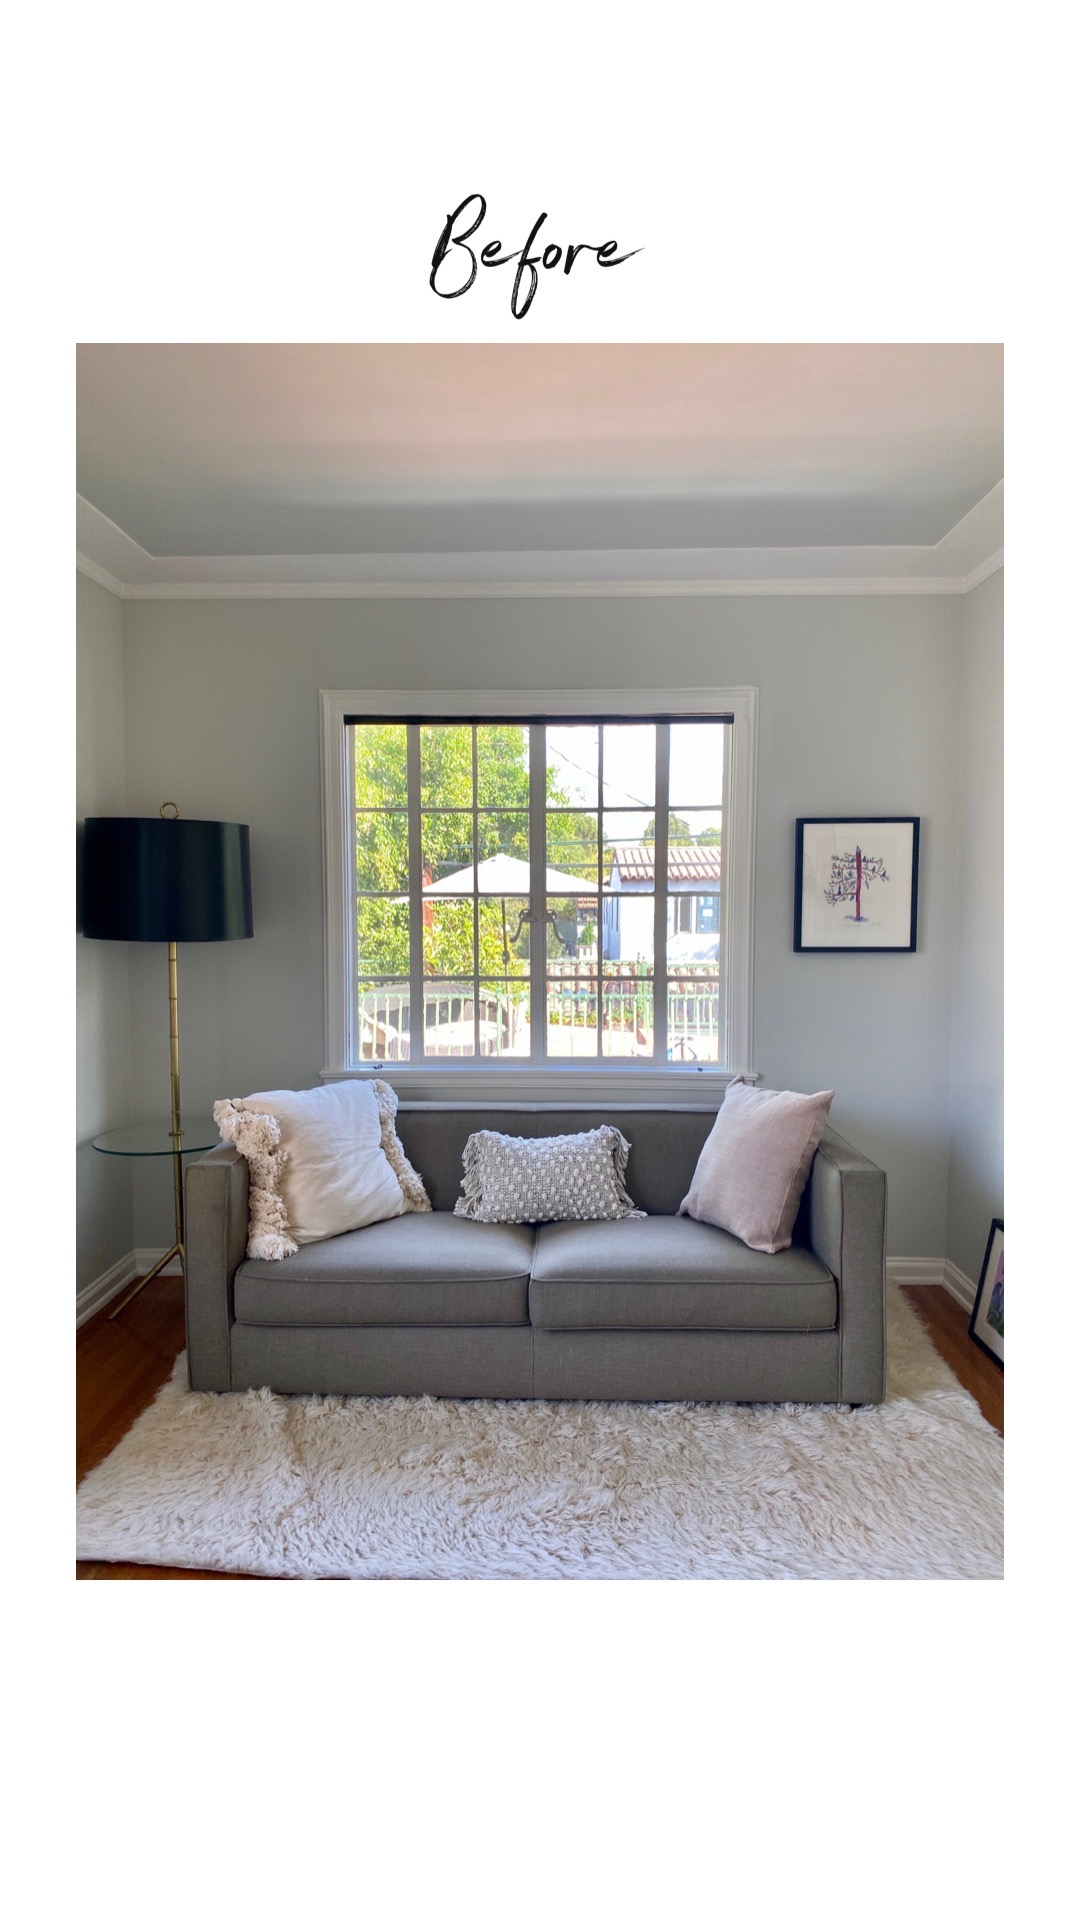 A relaxed living room with modern-style couch, shag rug and a large window with no coverings